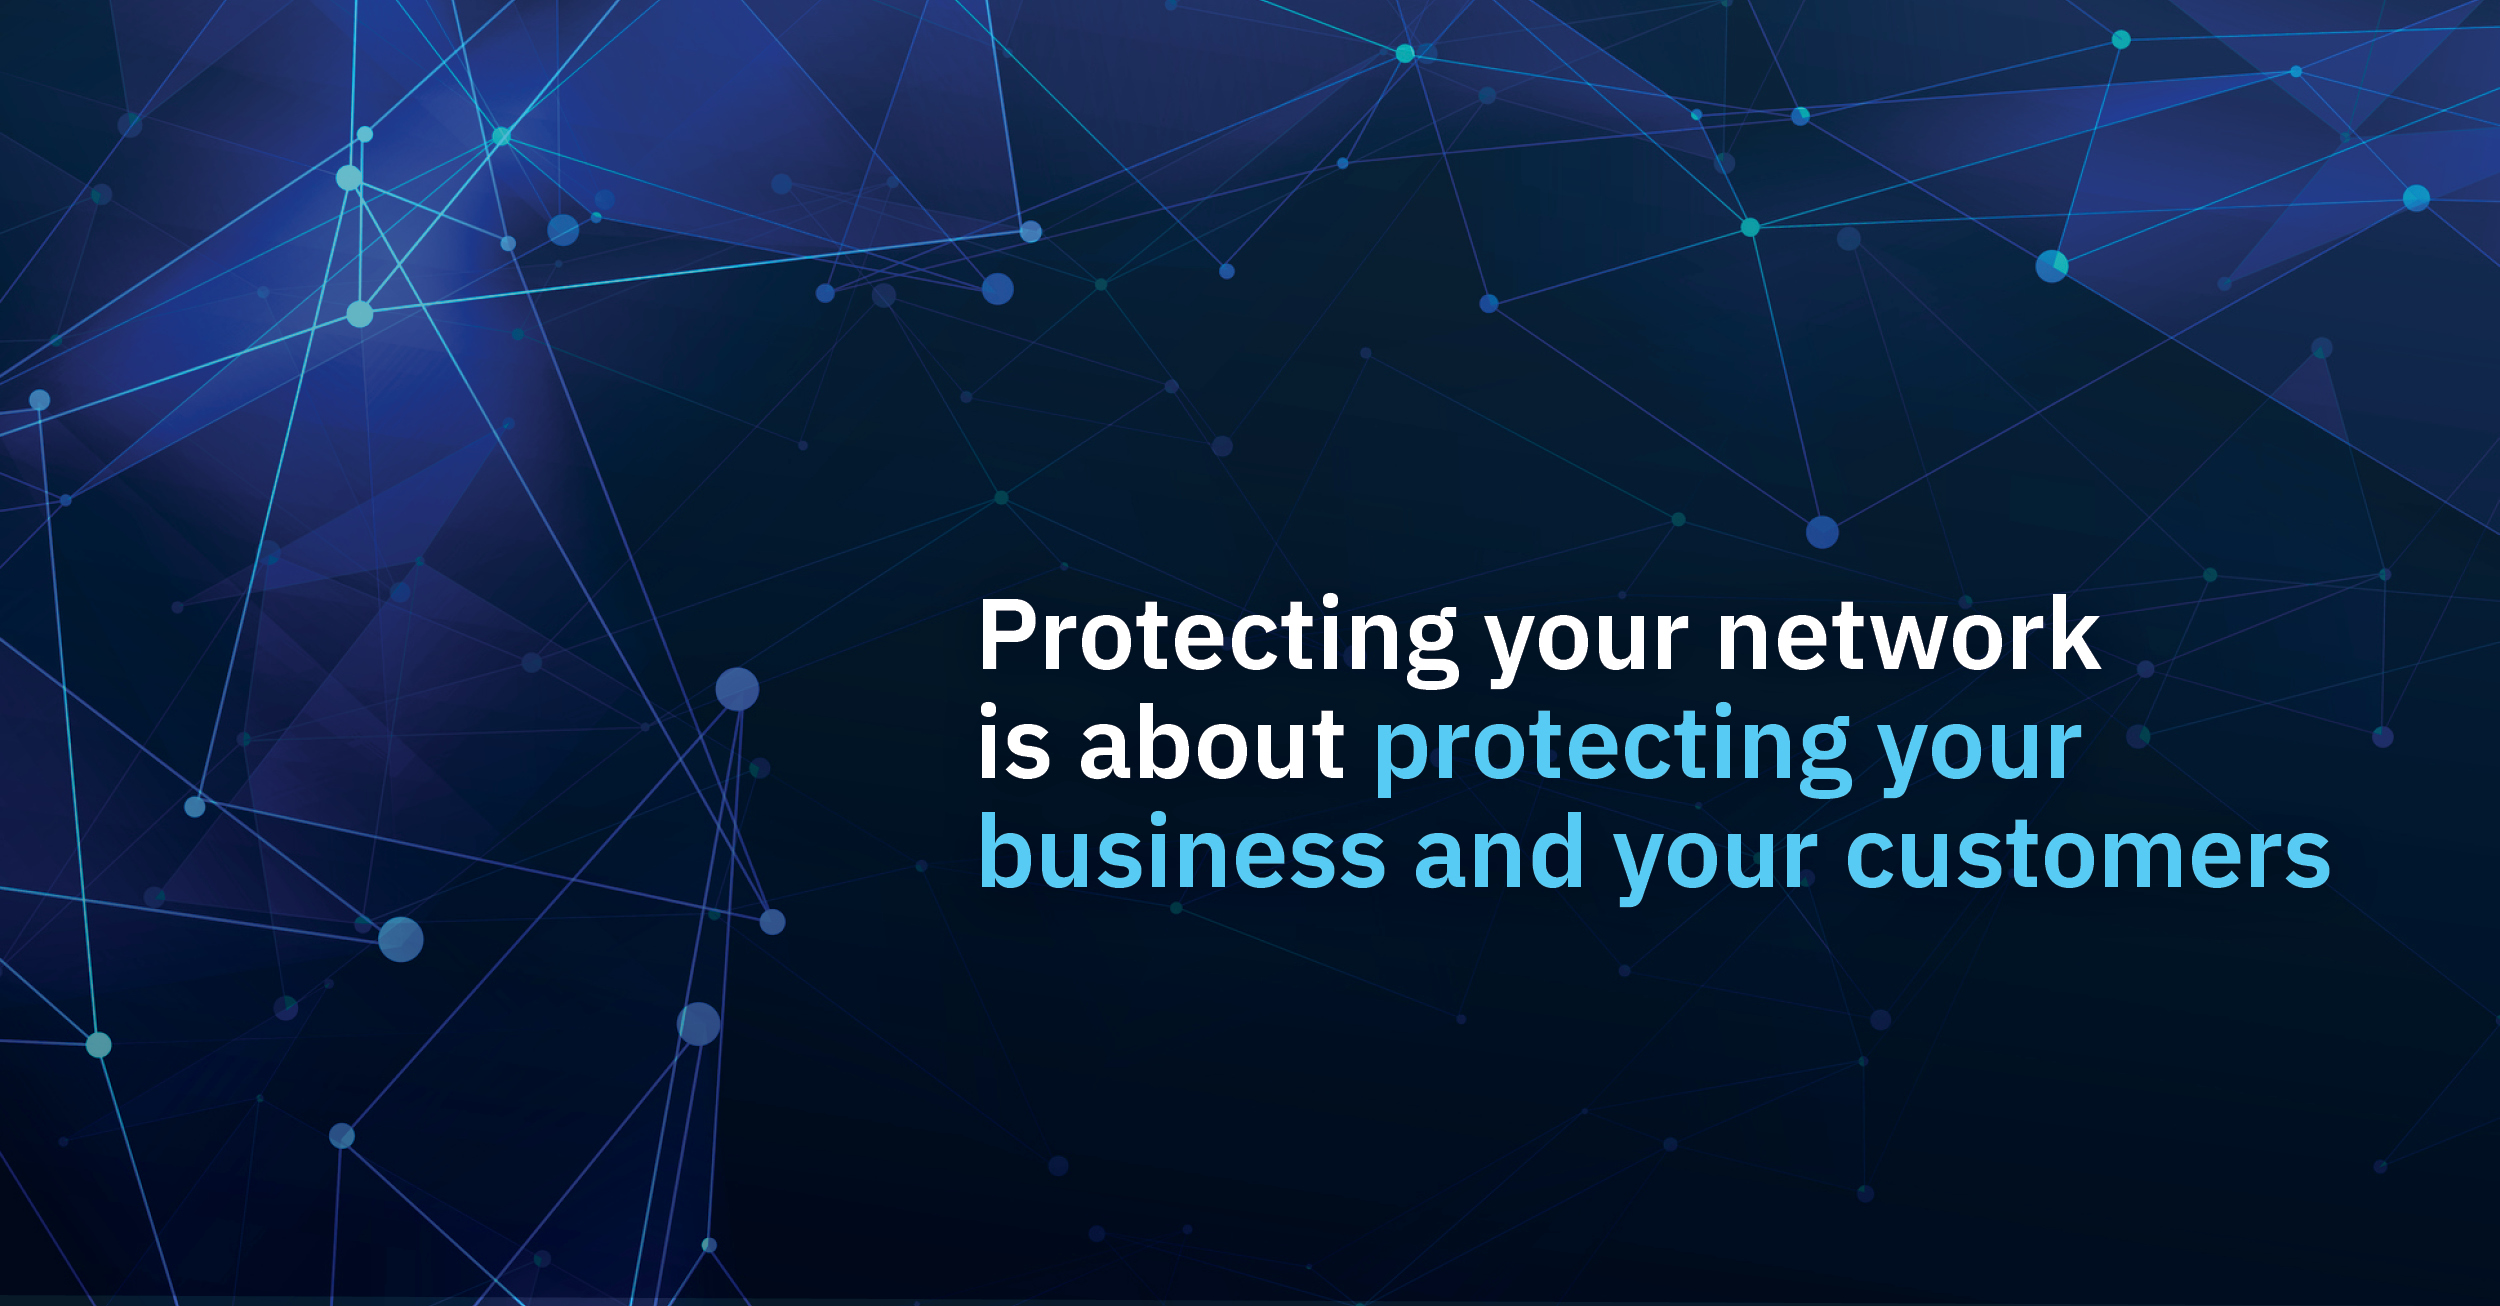 Protecting your network is about protecting your business and your customers